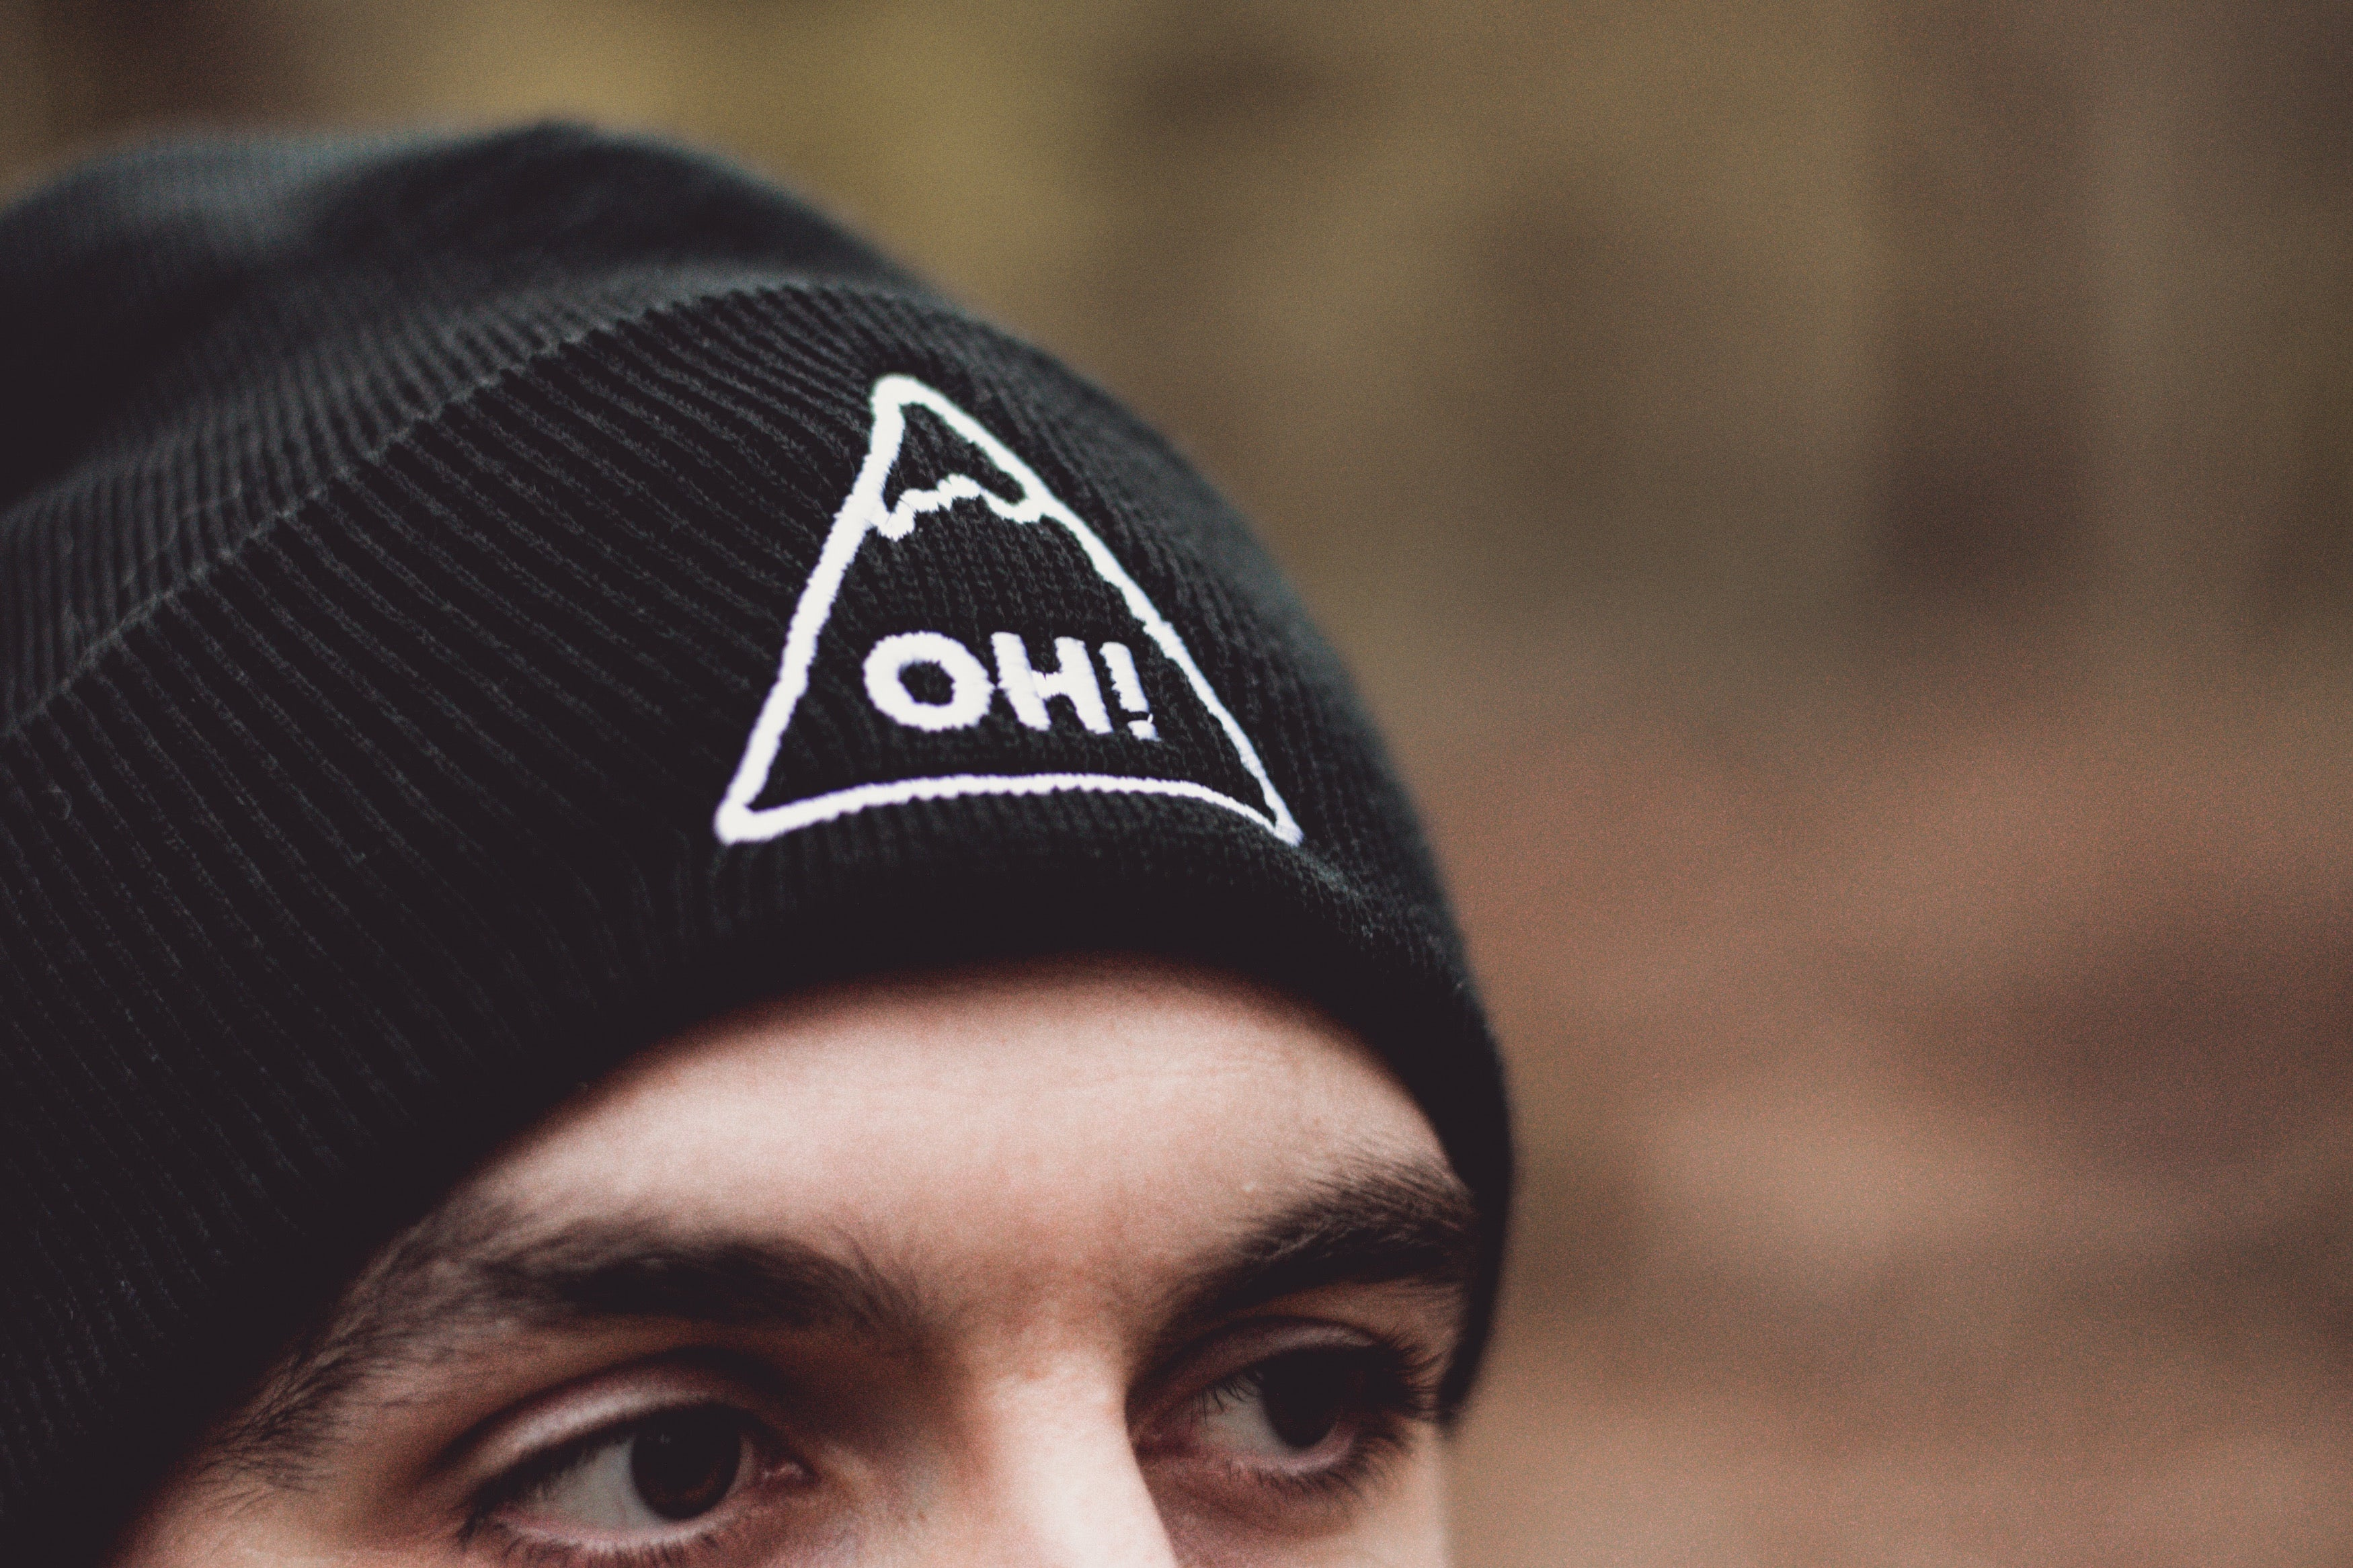 Close up model wearing Black Beanie with triangle logo and OH! embroidered in the centre